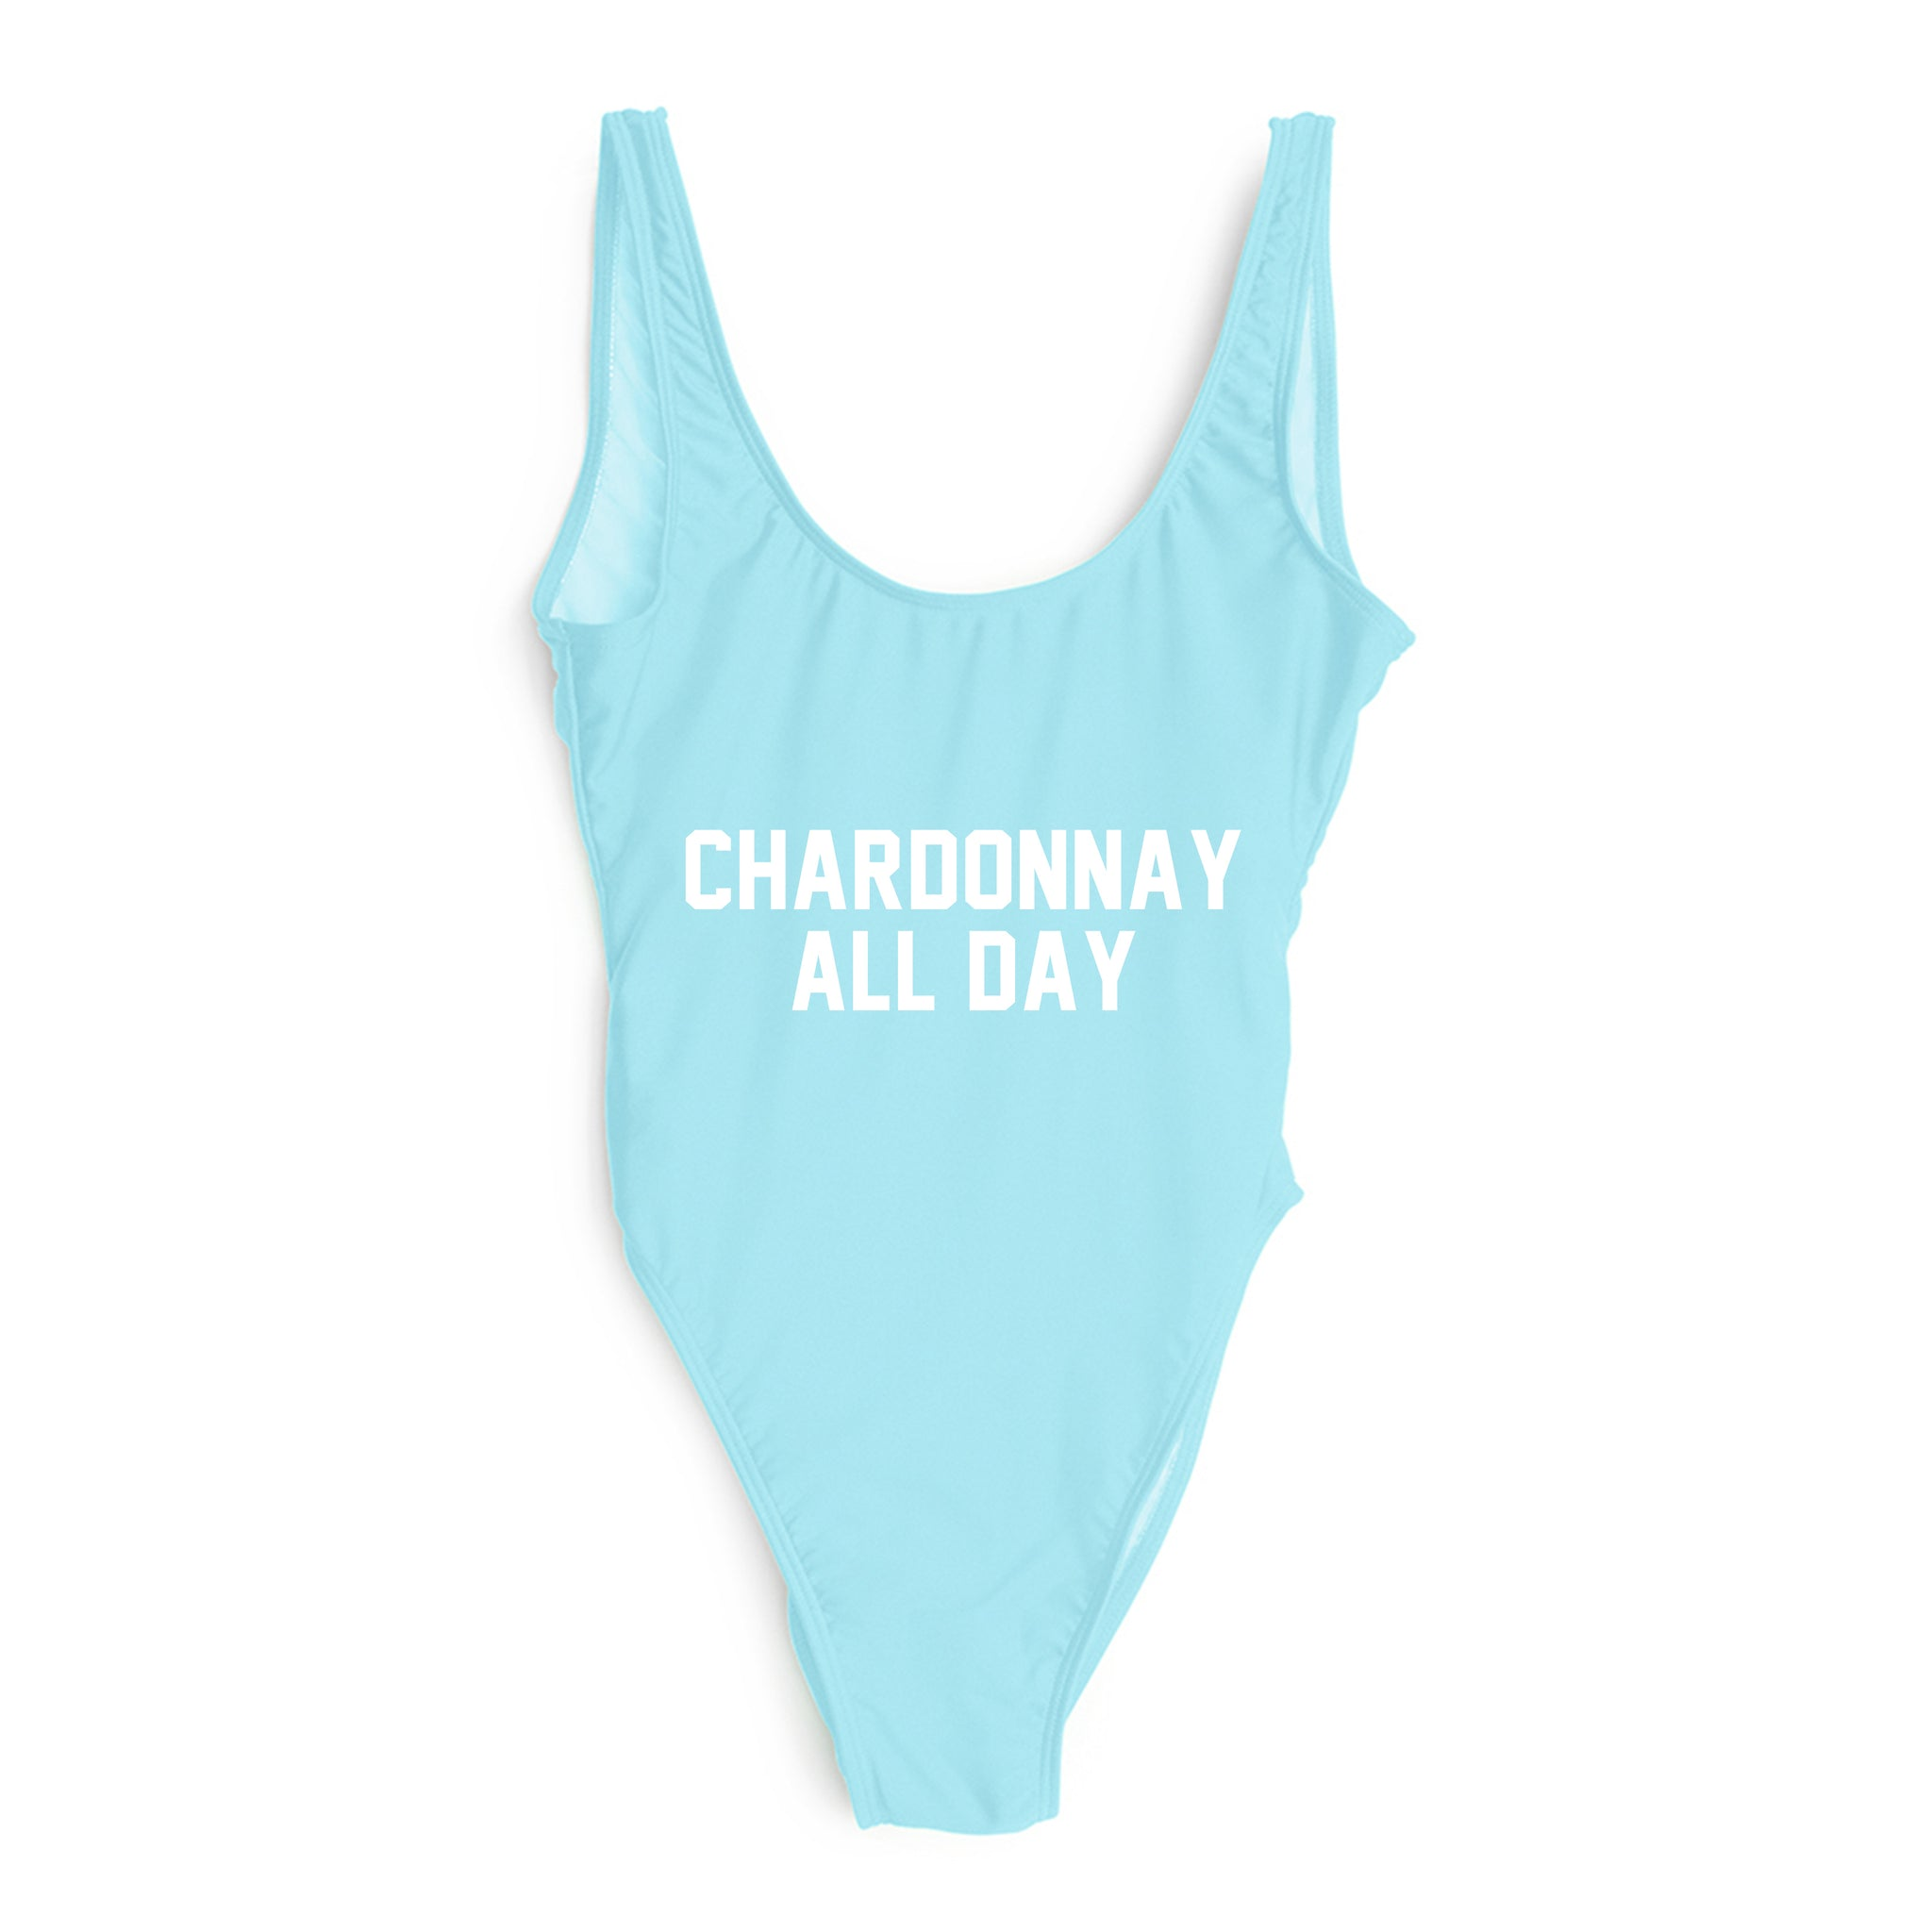 CHARDONNAY ALL DAY [SWIMSUIT]